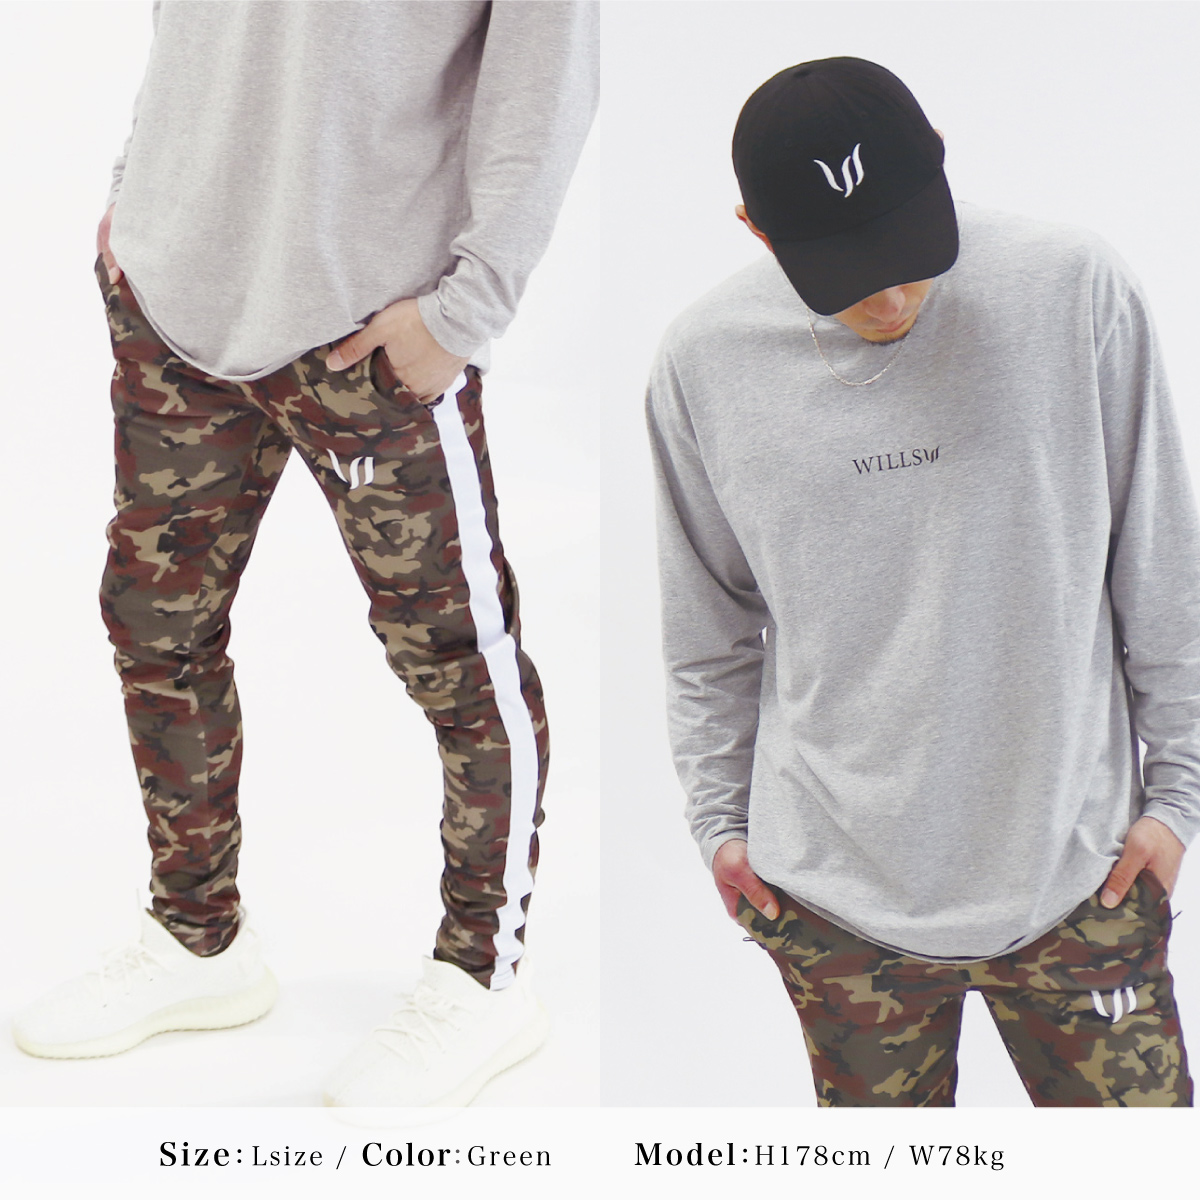 STRIKE TAPERED CAMO JOGGER - GREEN